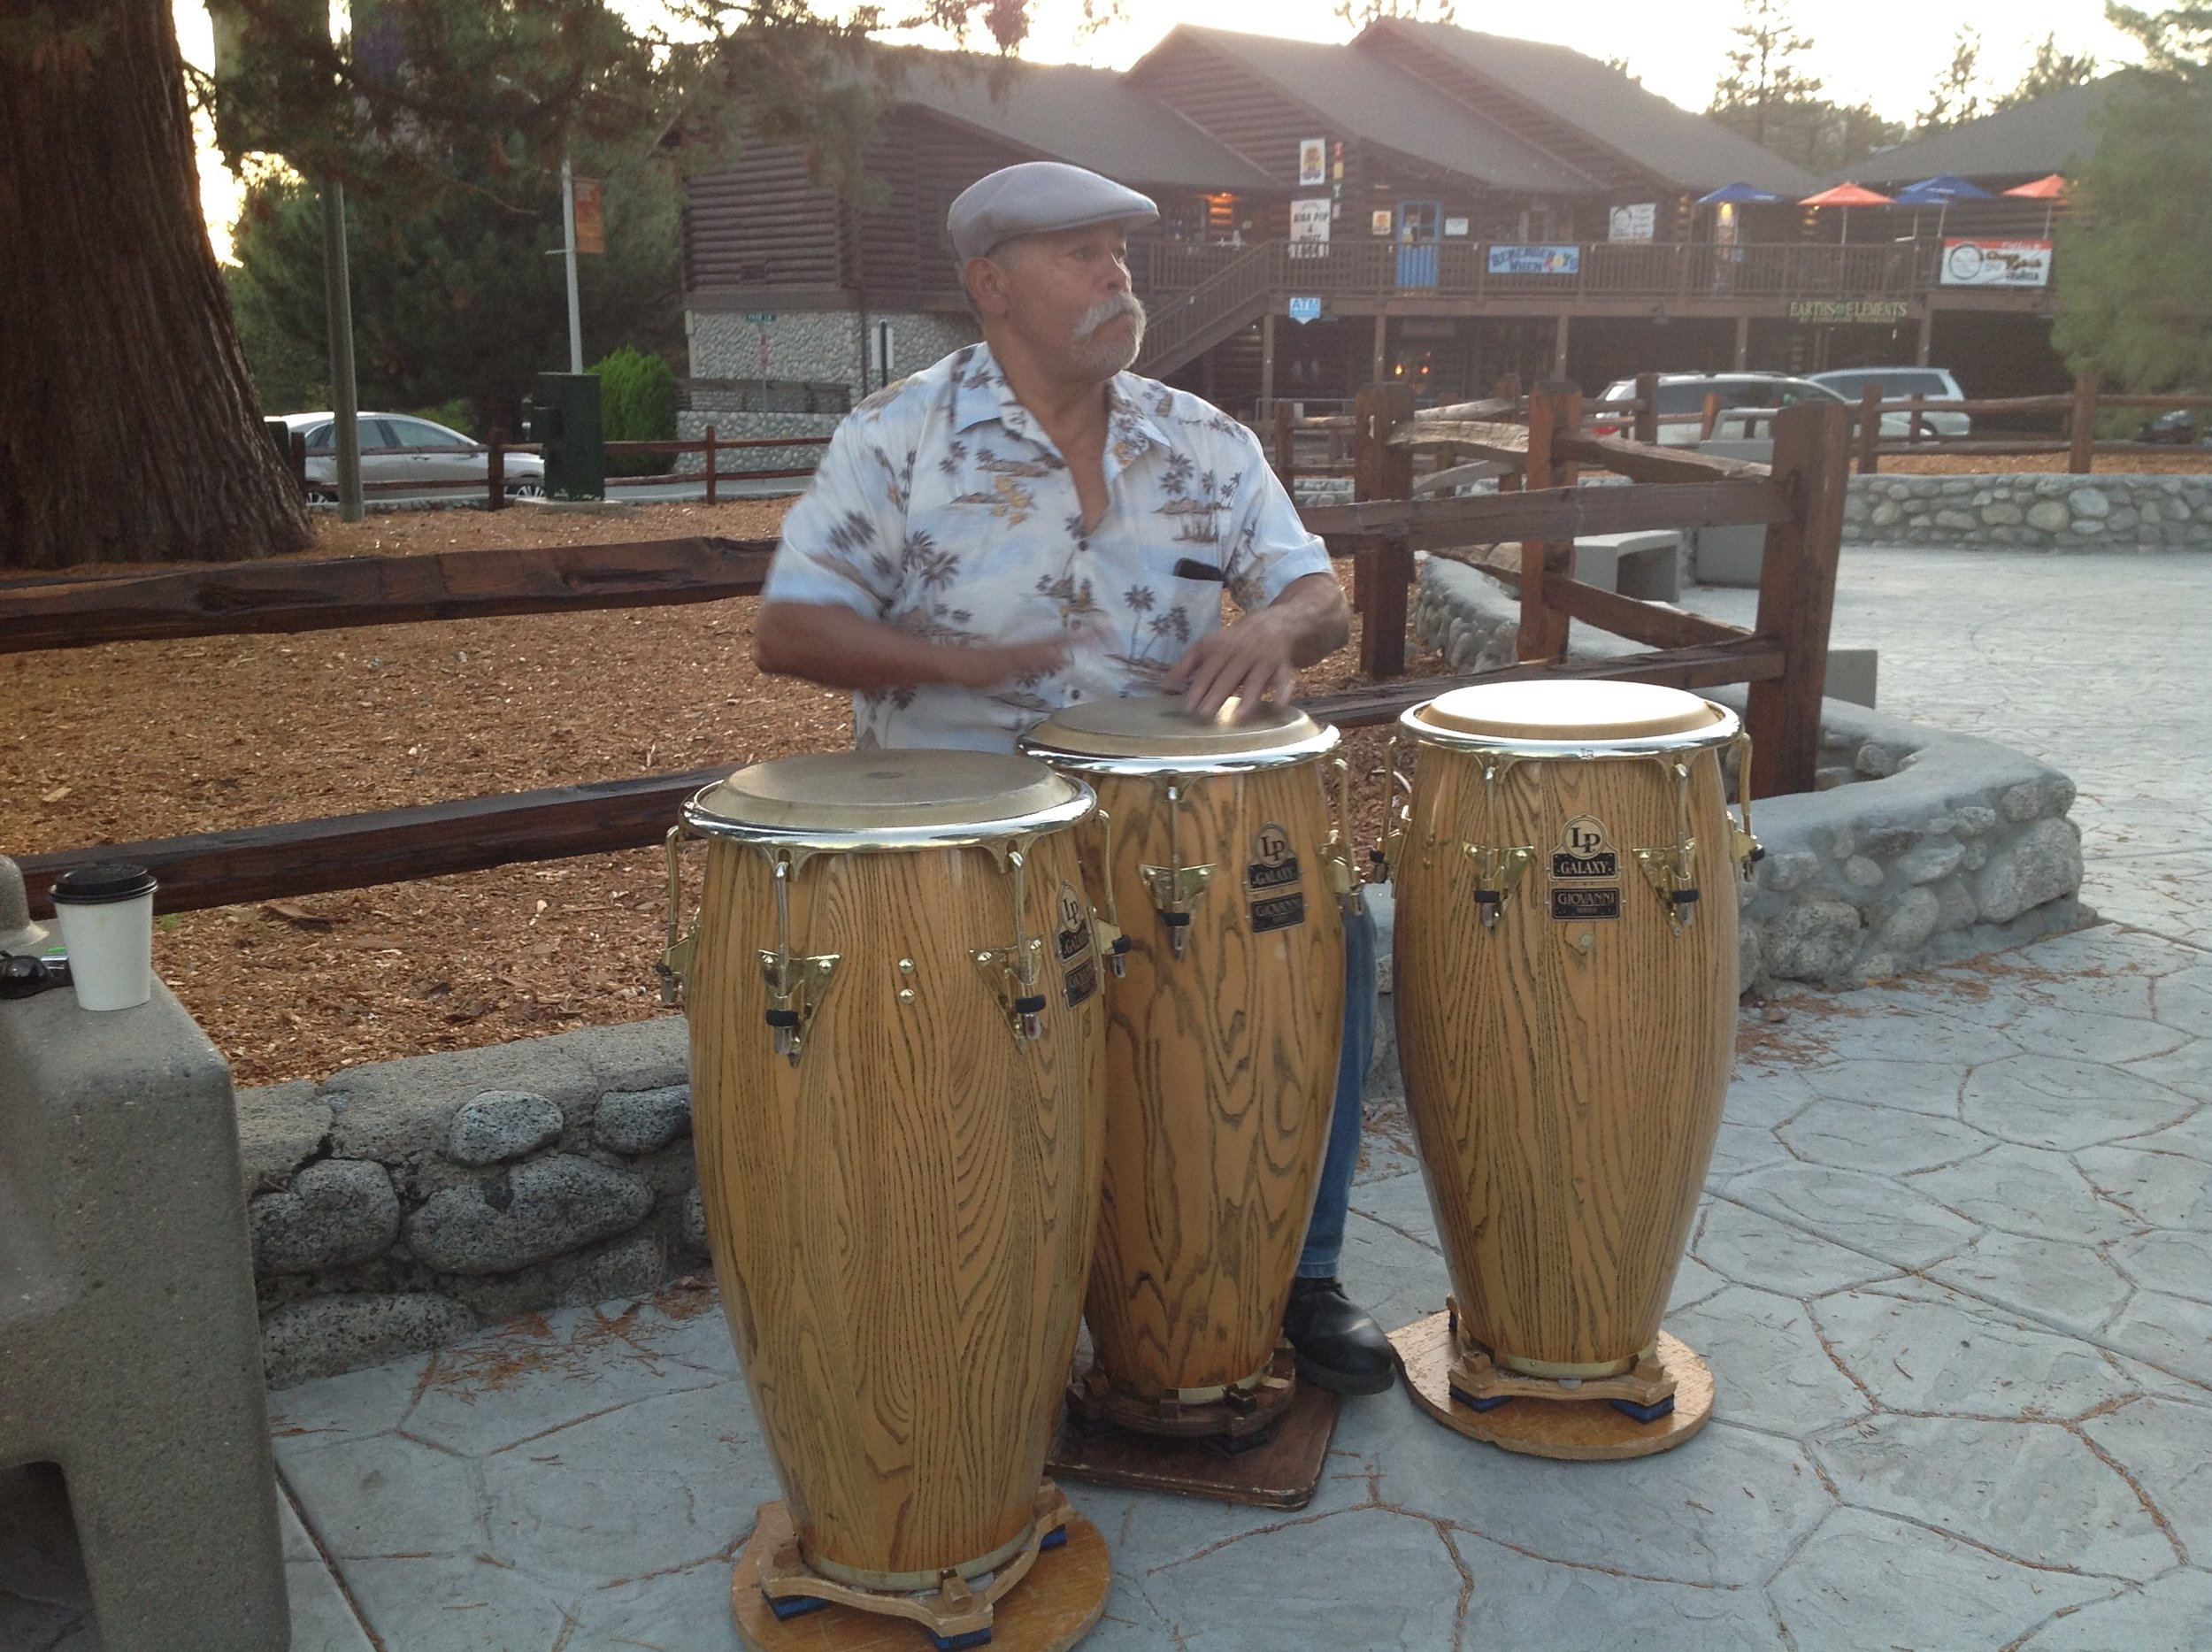 Should we hire this local Idyllwild talent to entertain at our wedding?